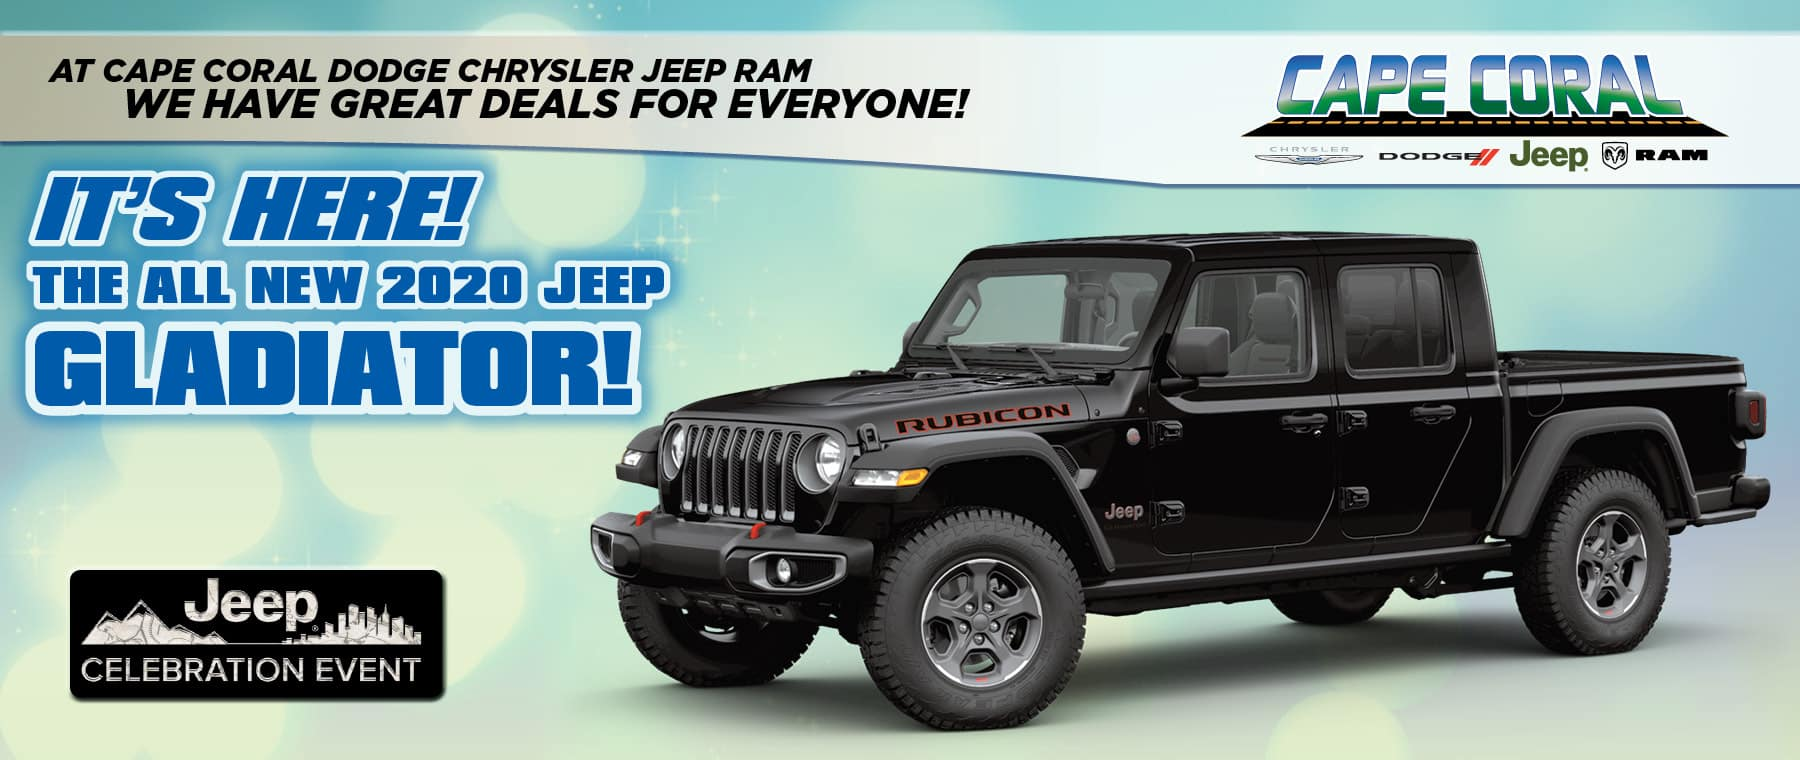 The 2020 Jeep Gladiators Are Here! - Cape Coral Chrysler Jeep Dodge RAM!